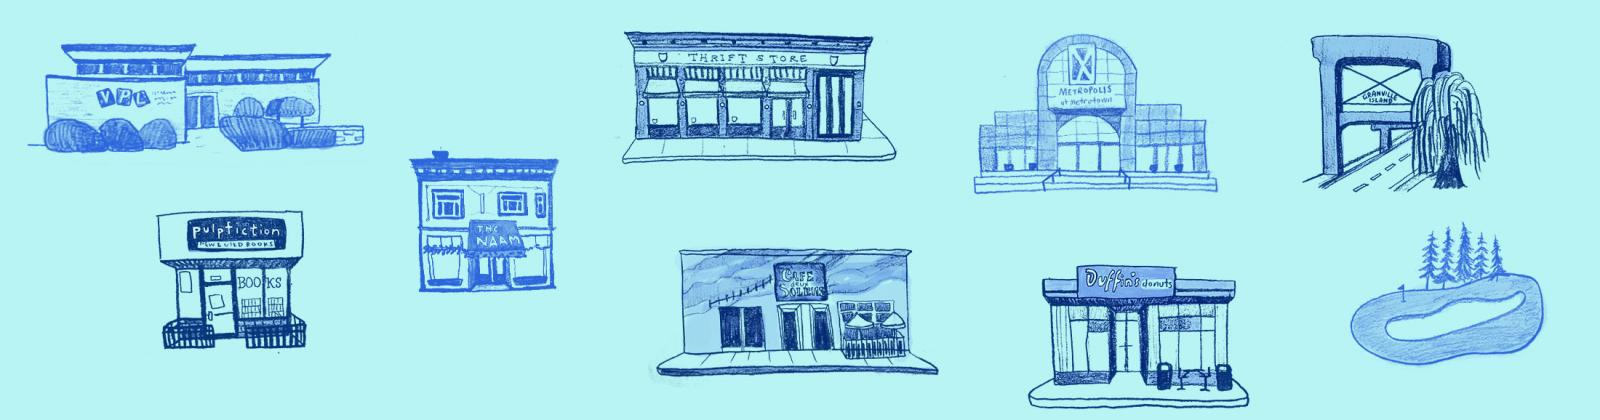 Illustration of Vancouver building fronts